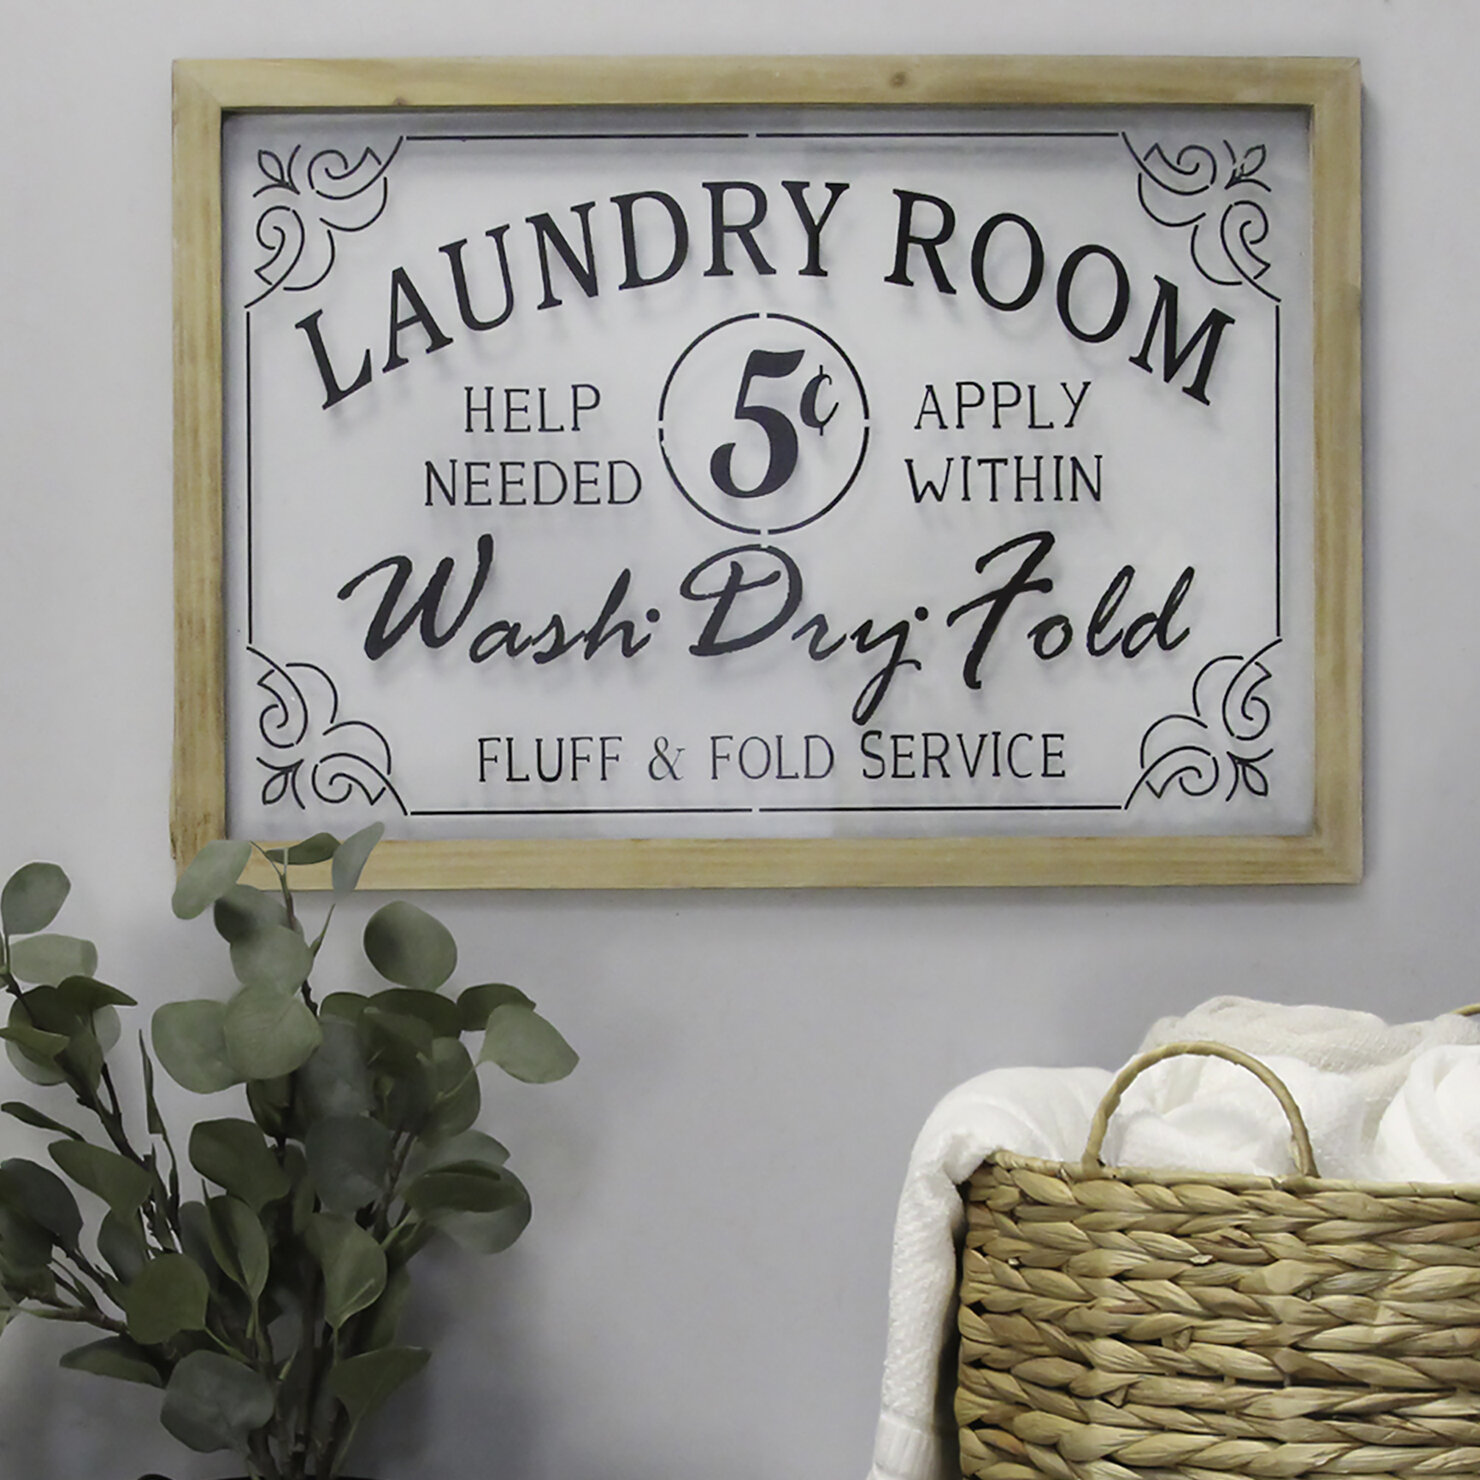 August Grove Laundry Room Wall Decor Reviews